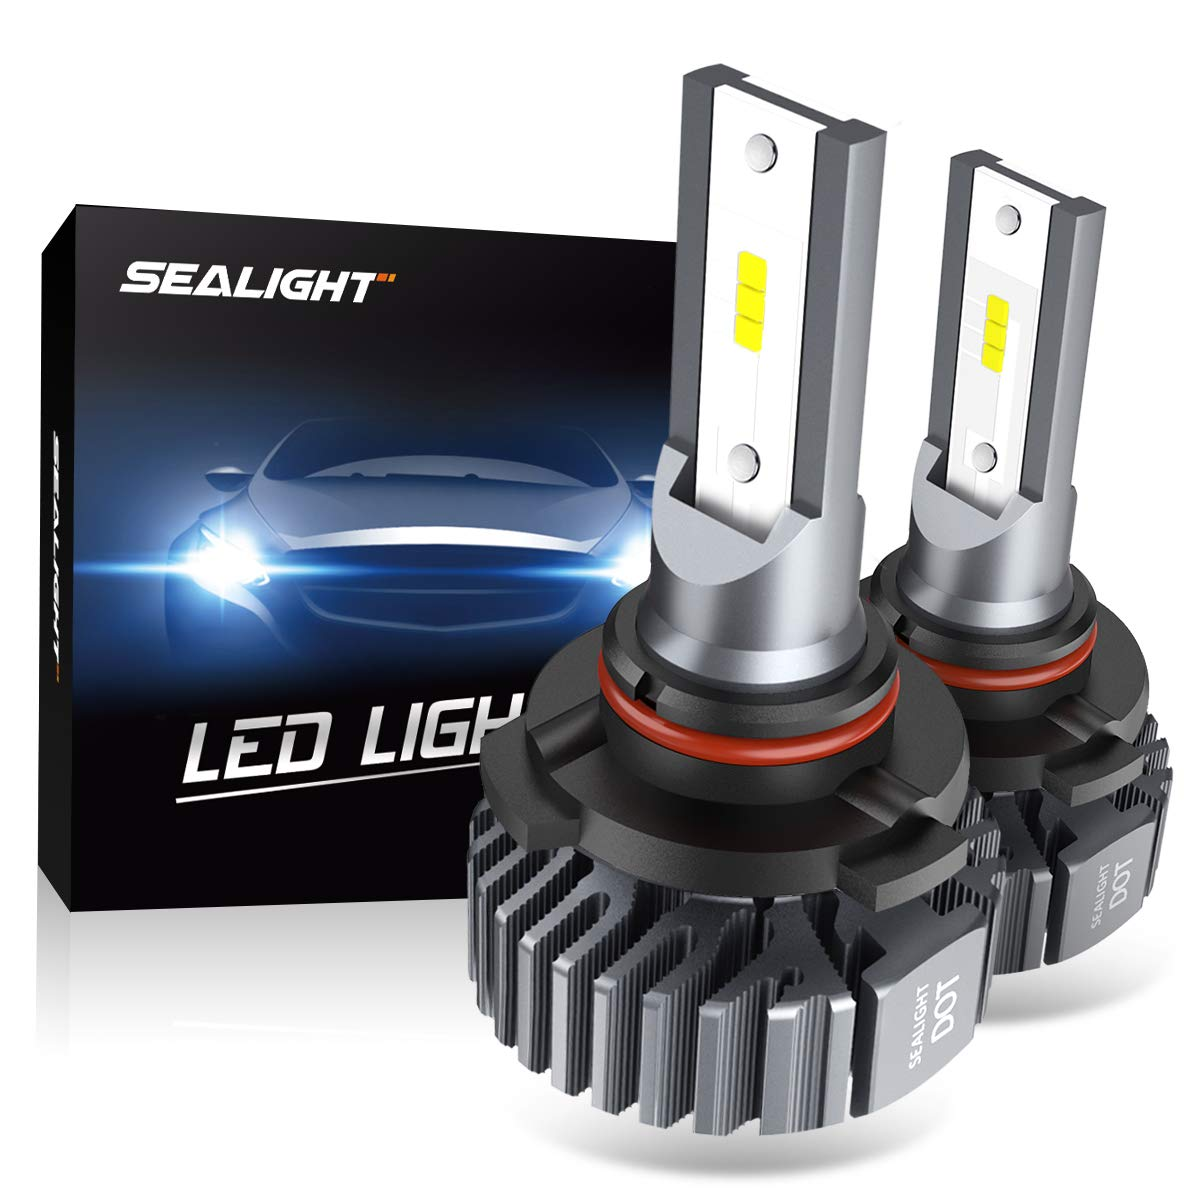 SEALIGHT 9005 HB3 LED Headlight Bulbs Fanless 6000K White High Beam CSP Chips Halogen Headlight Replacement 30W 5000Lumens by SEALIGHT